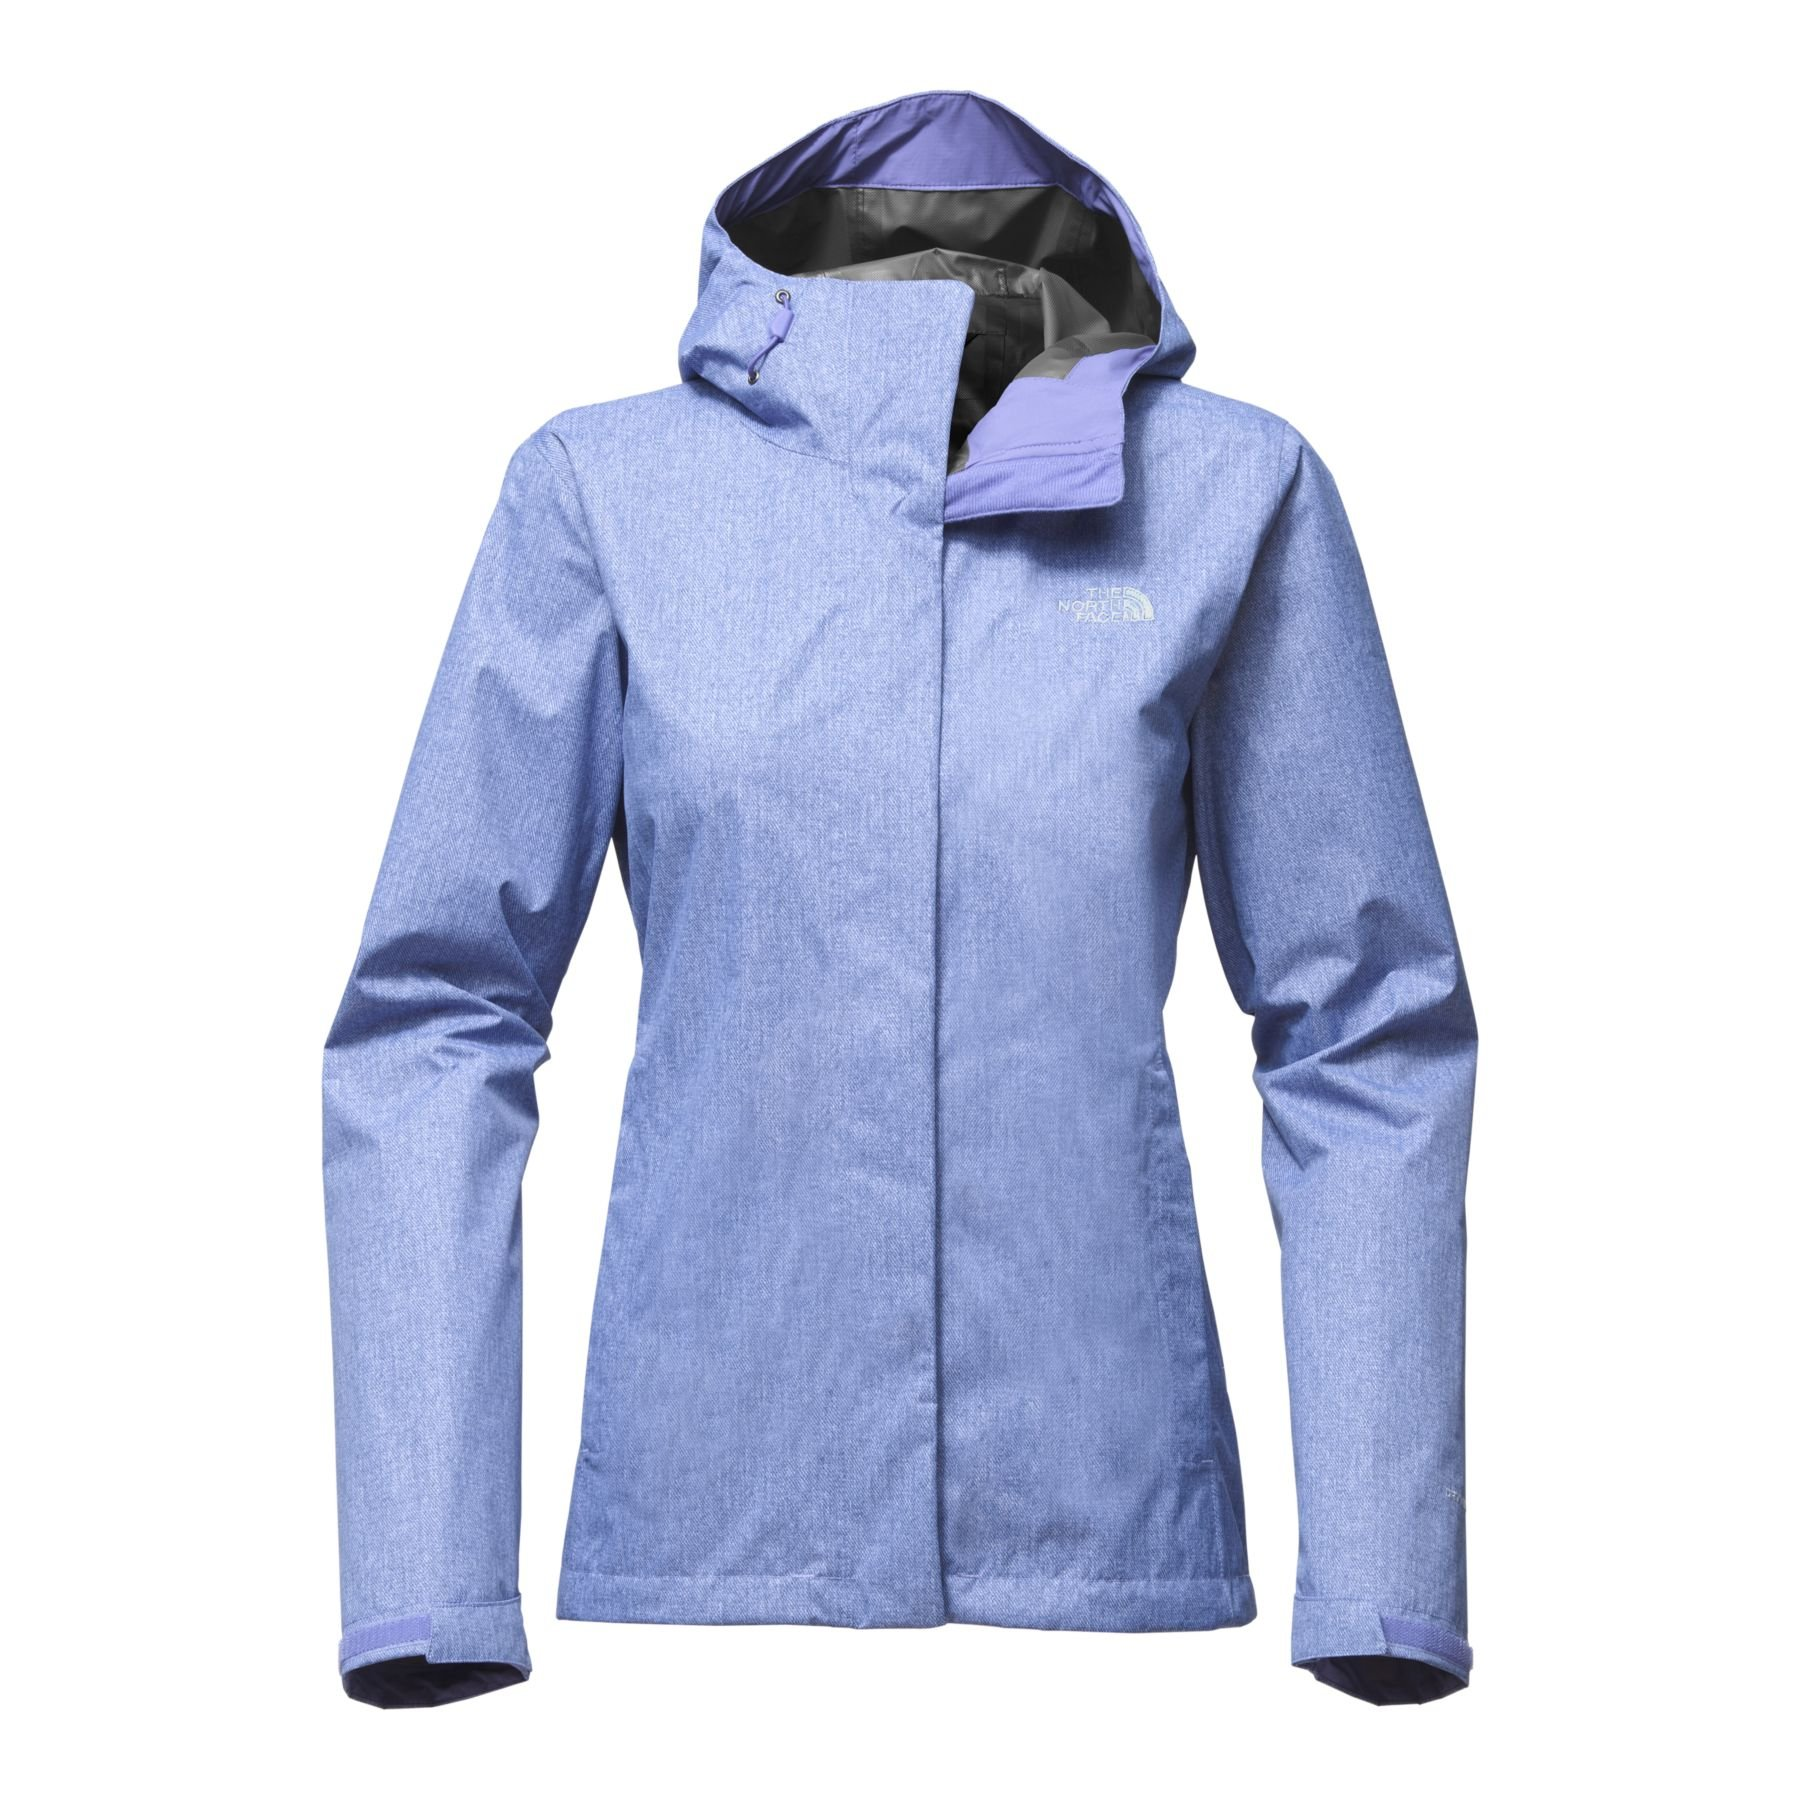 The North Face Women's Print Venture Jacket - Stellar Blue Denim Print - S by The North Face